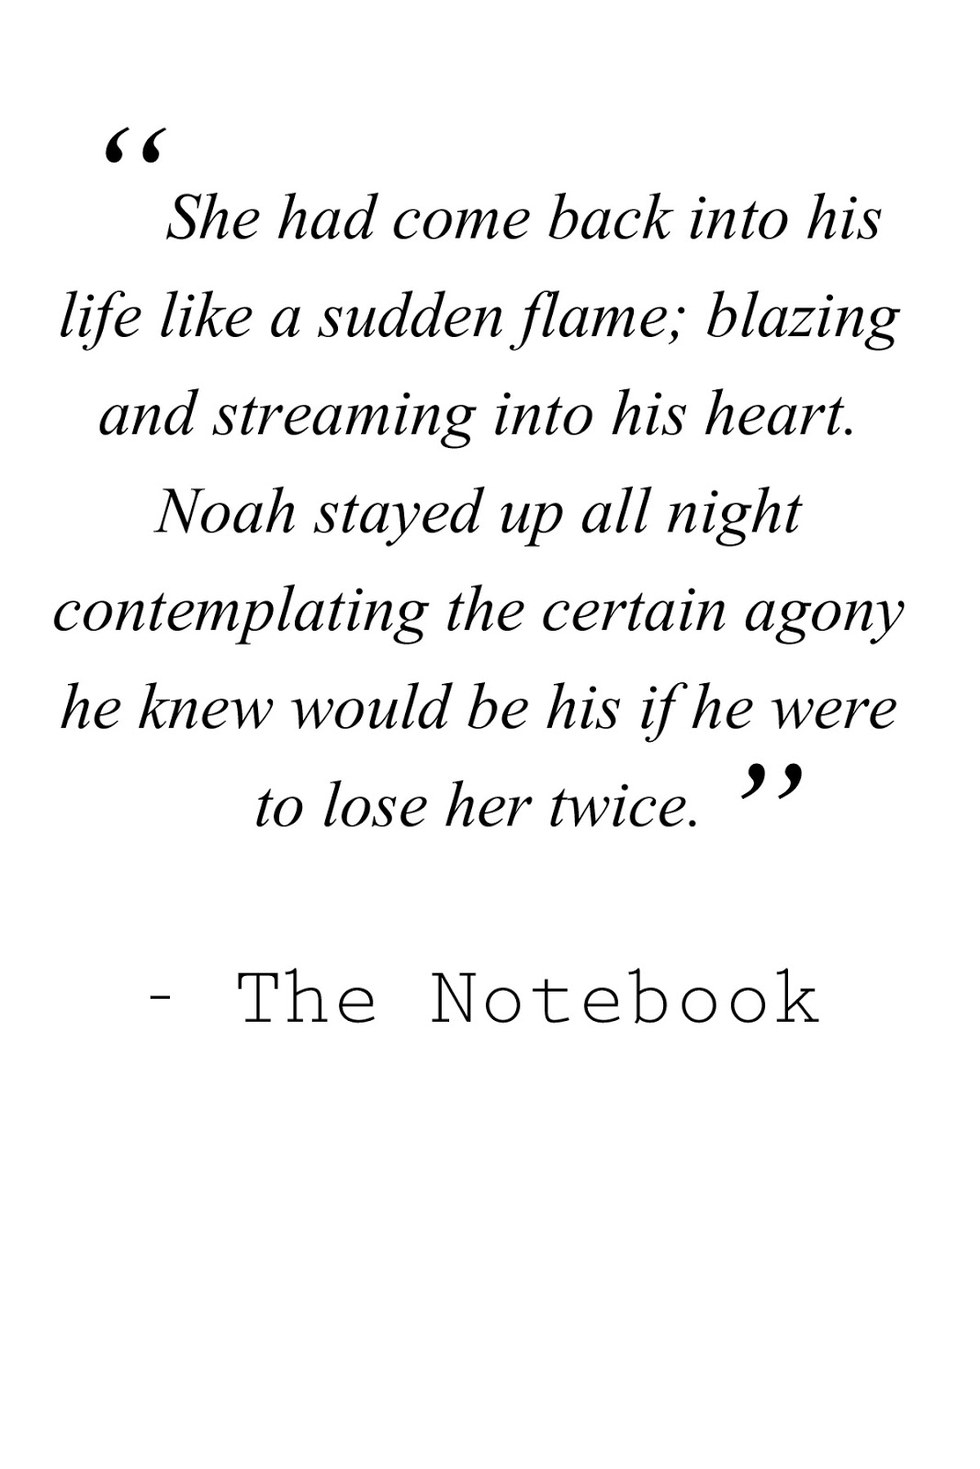 The Notebook\' quotes